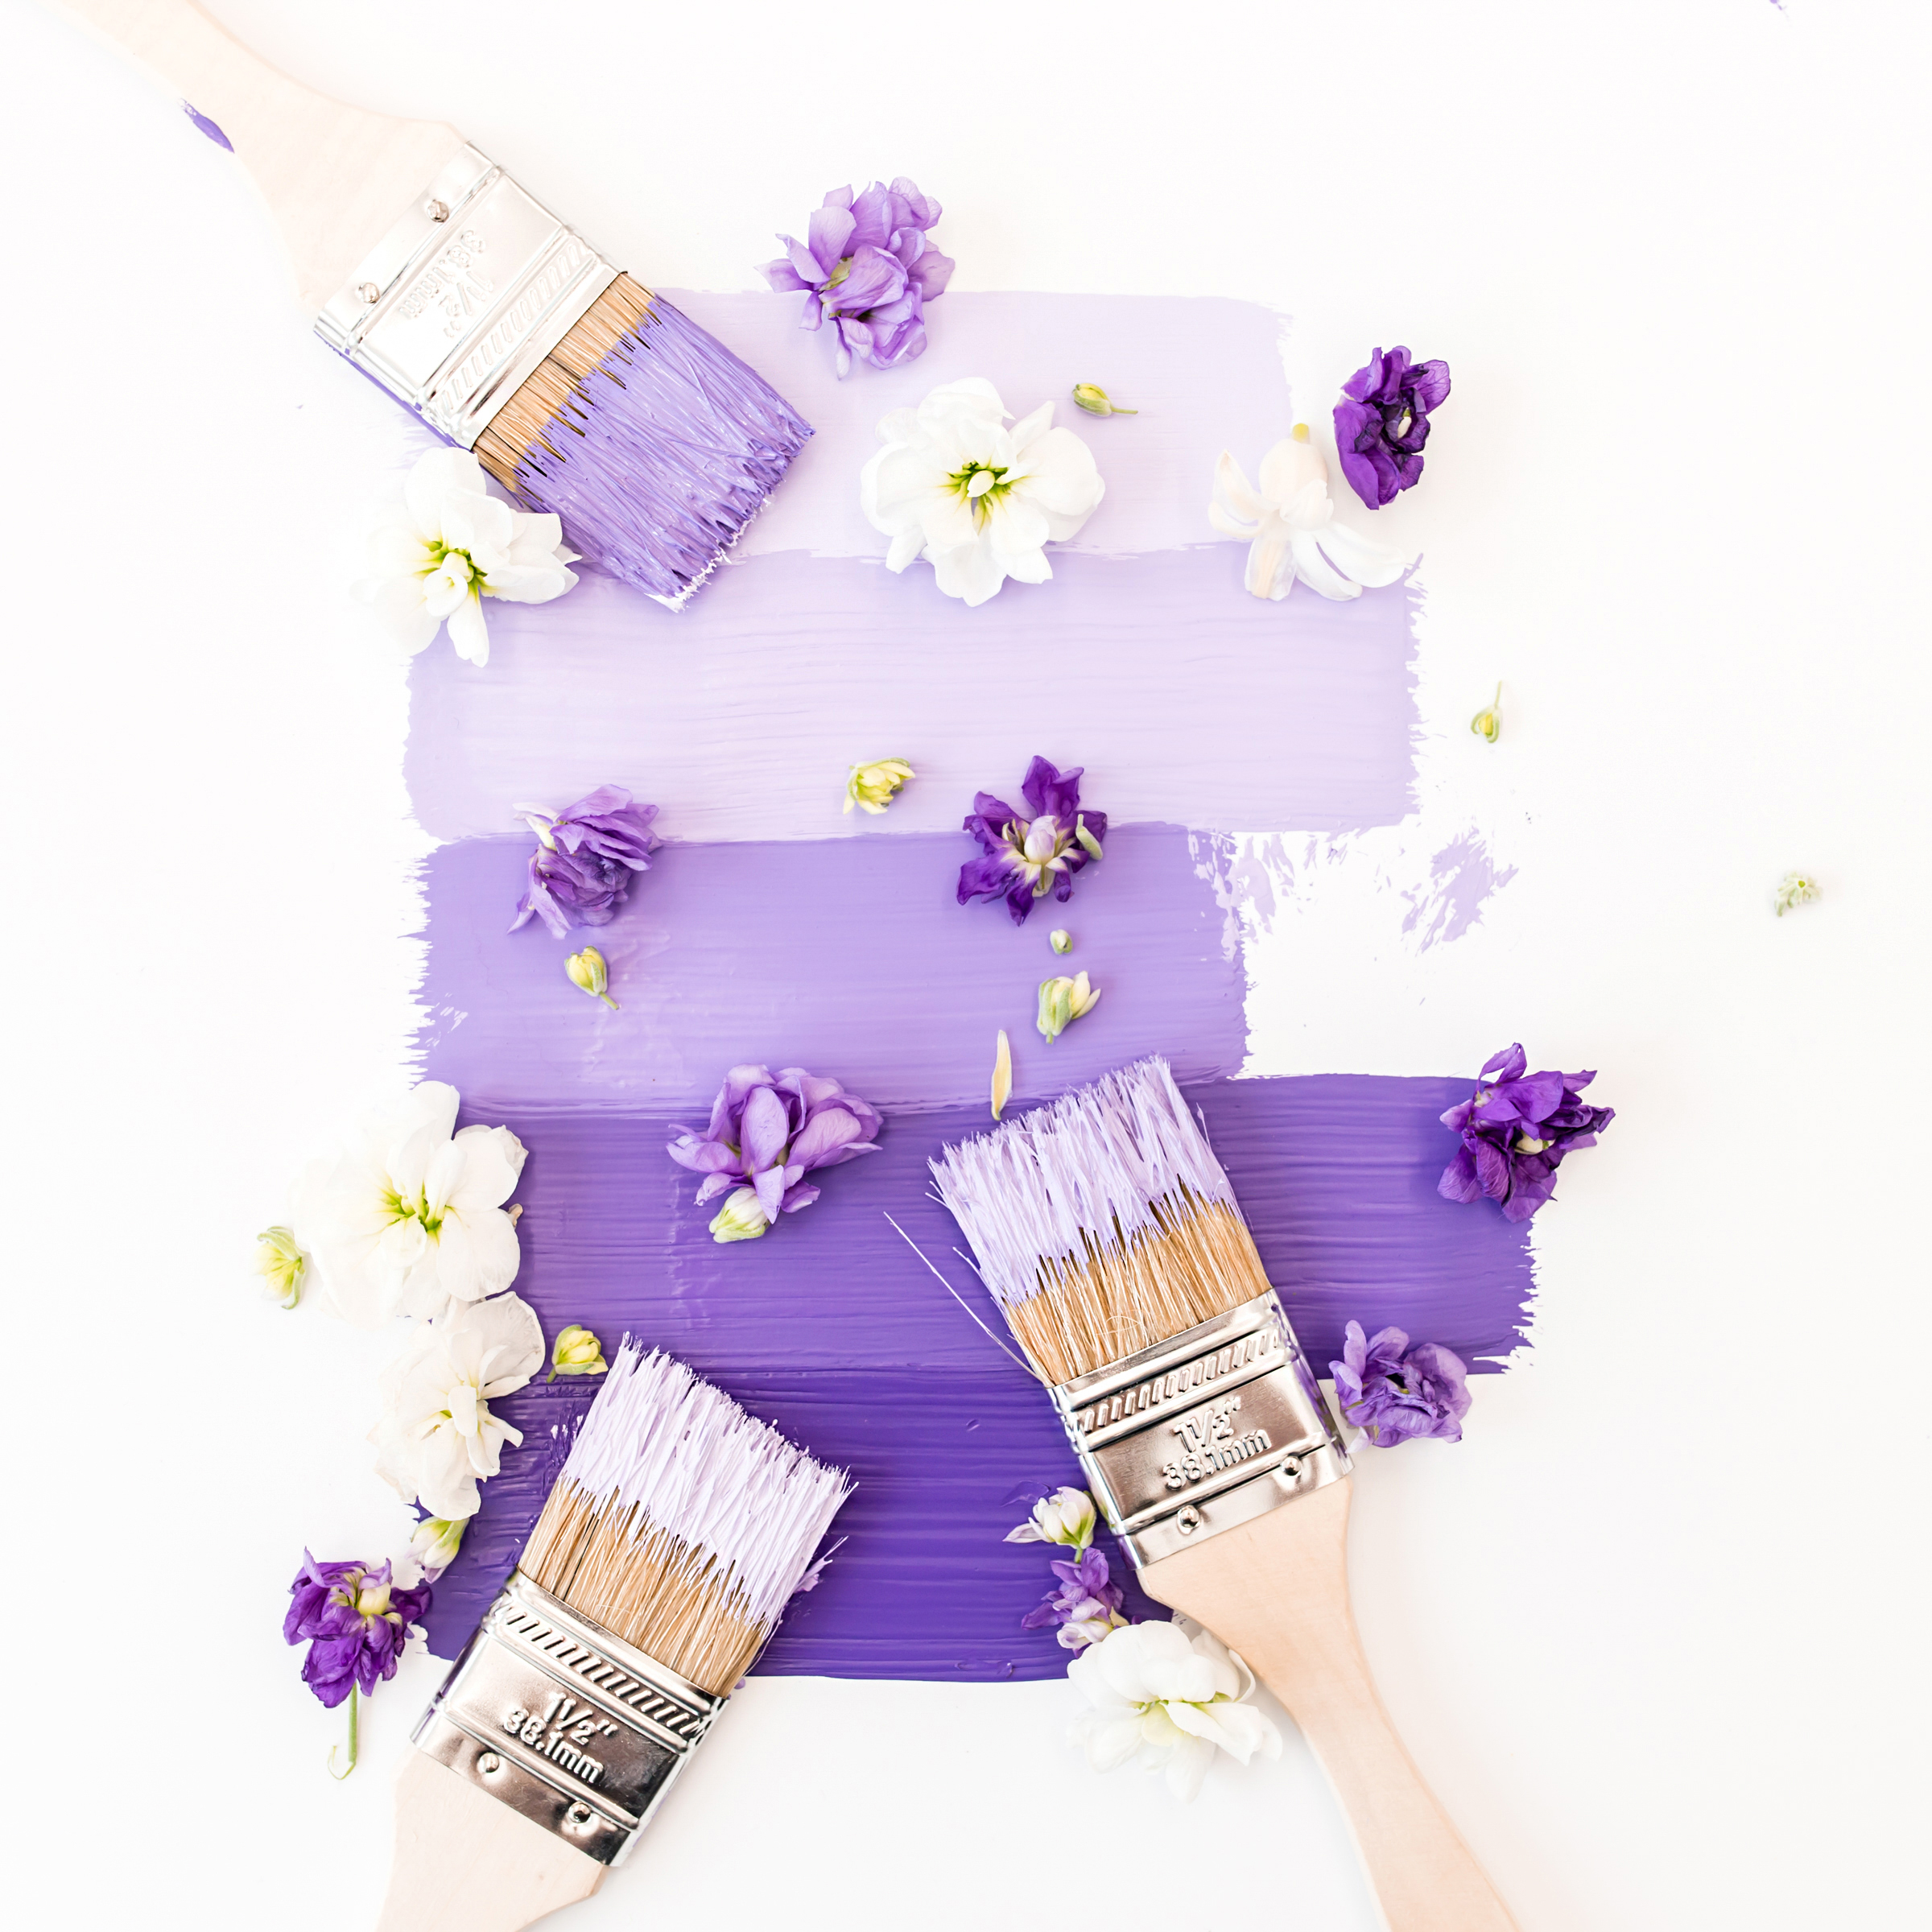 Violet and lavender paint